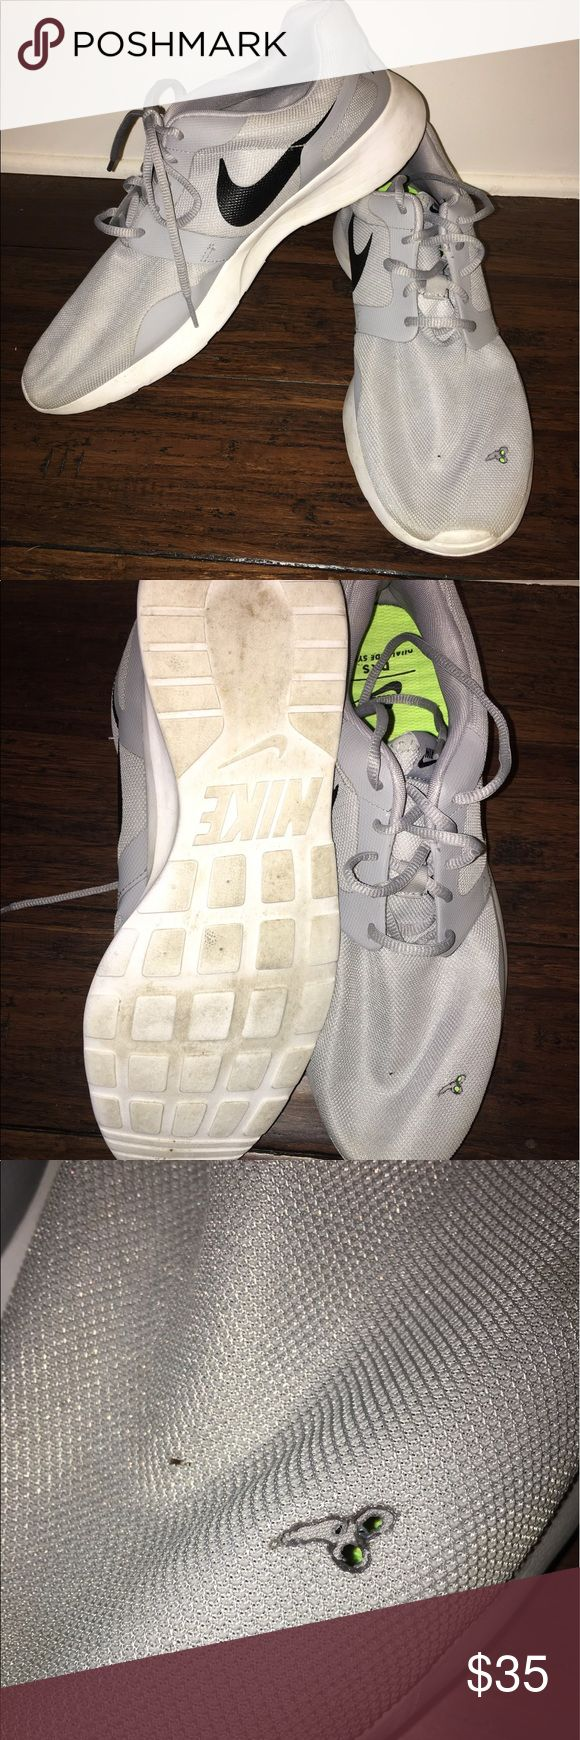 Gray Nike Shoes Size 13 Gray Nike Shoes Size 13 similar to Roshe Fair Condition has a burn mark for campfire Nike Shoes Athletic Shoes